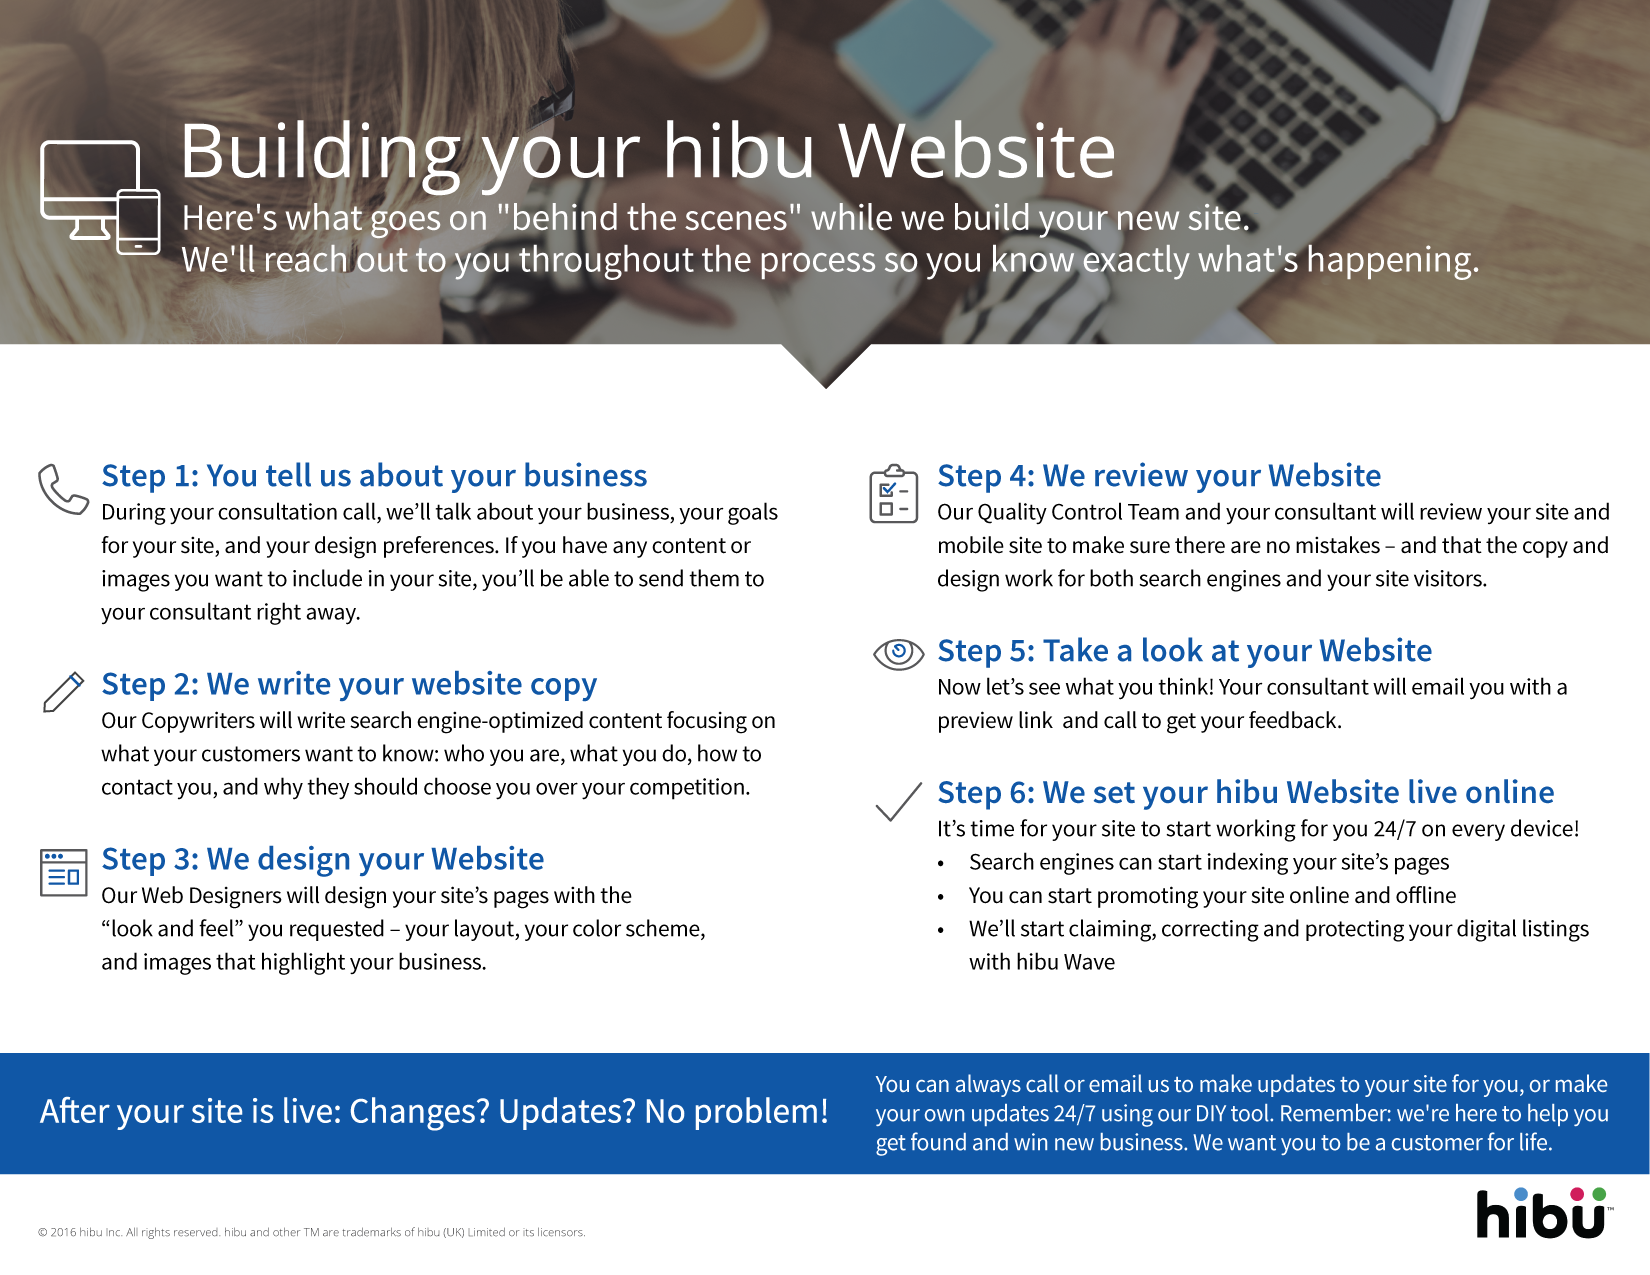 hibu Premium Website Next Steps Guide